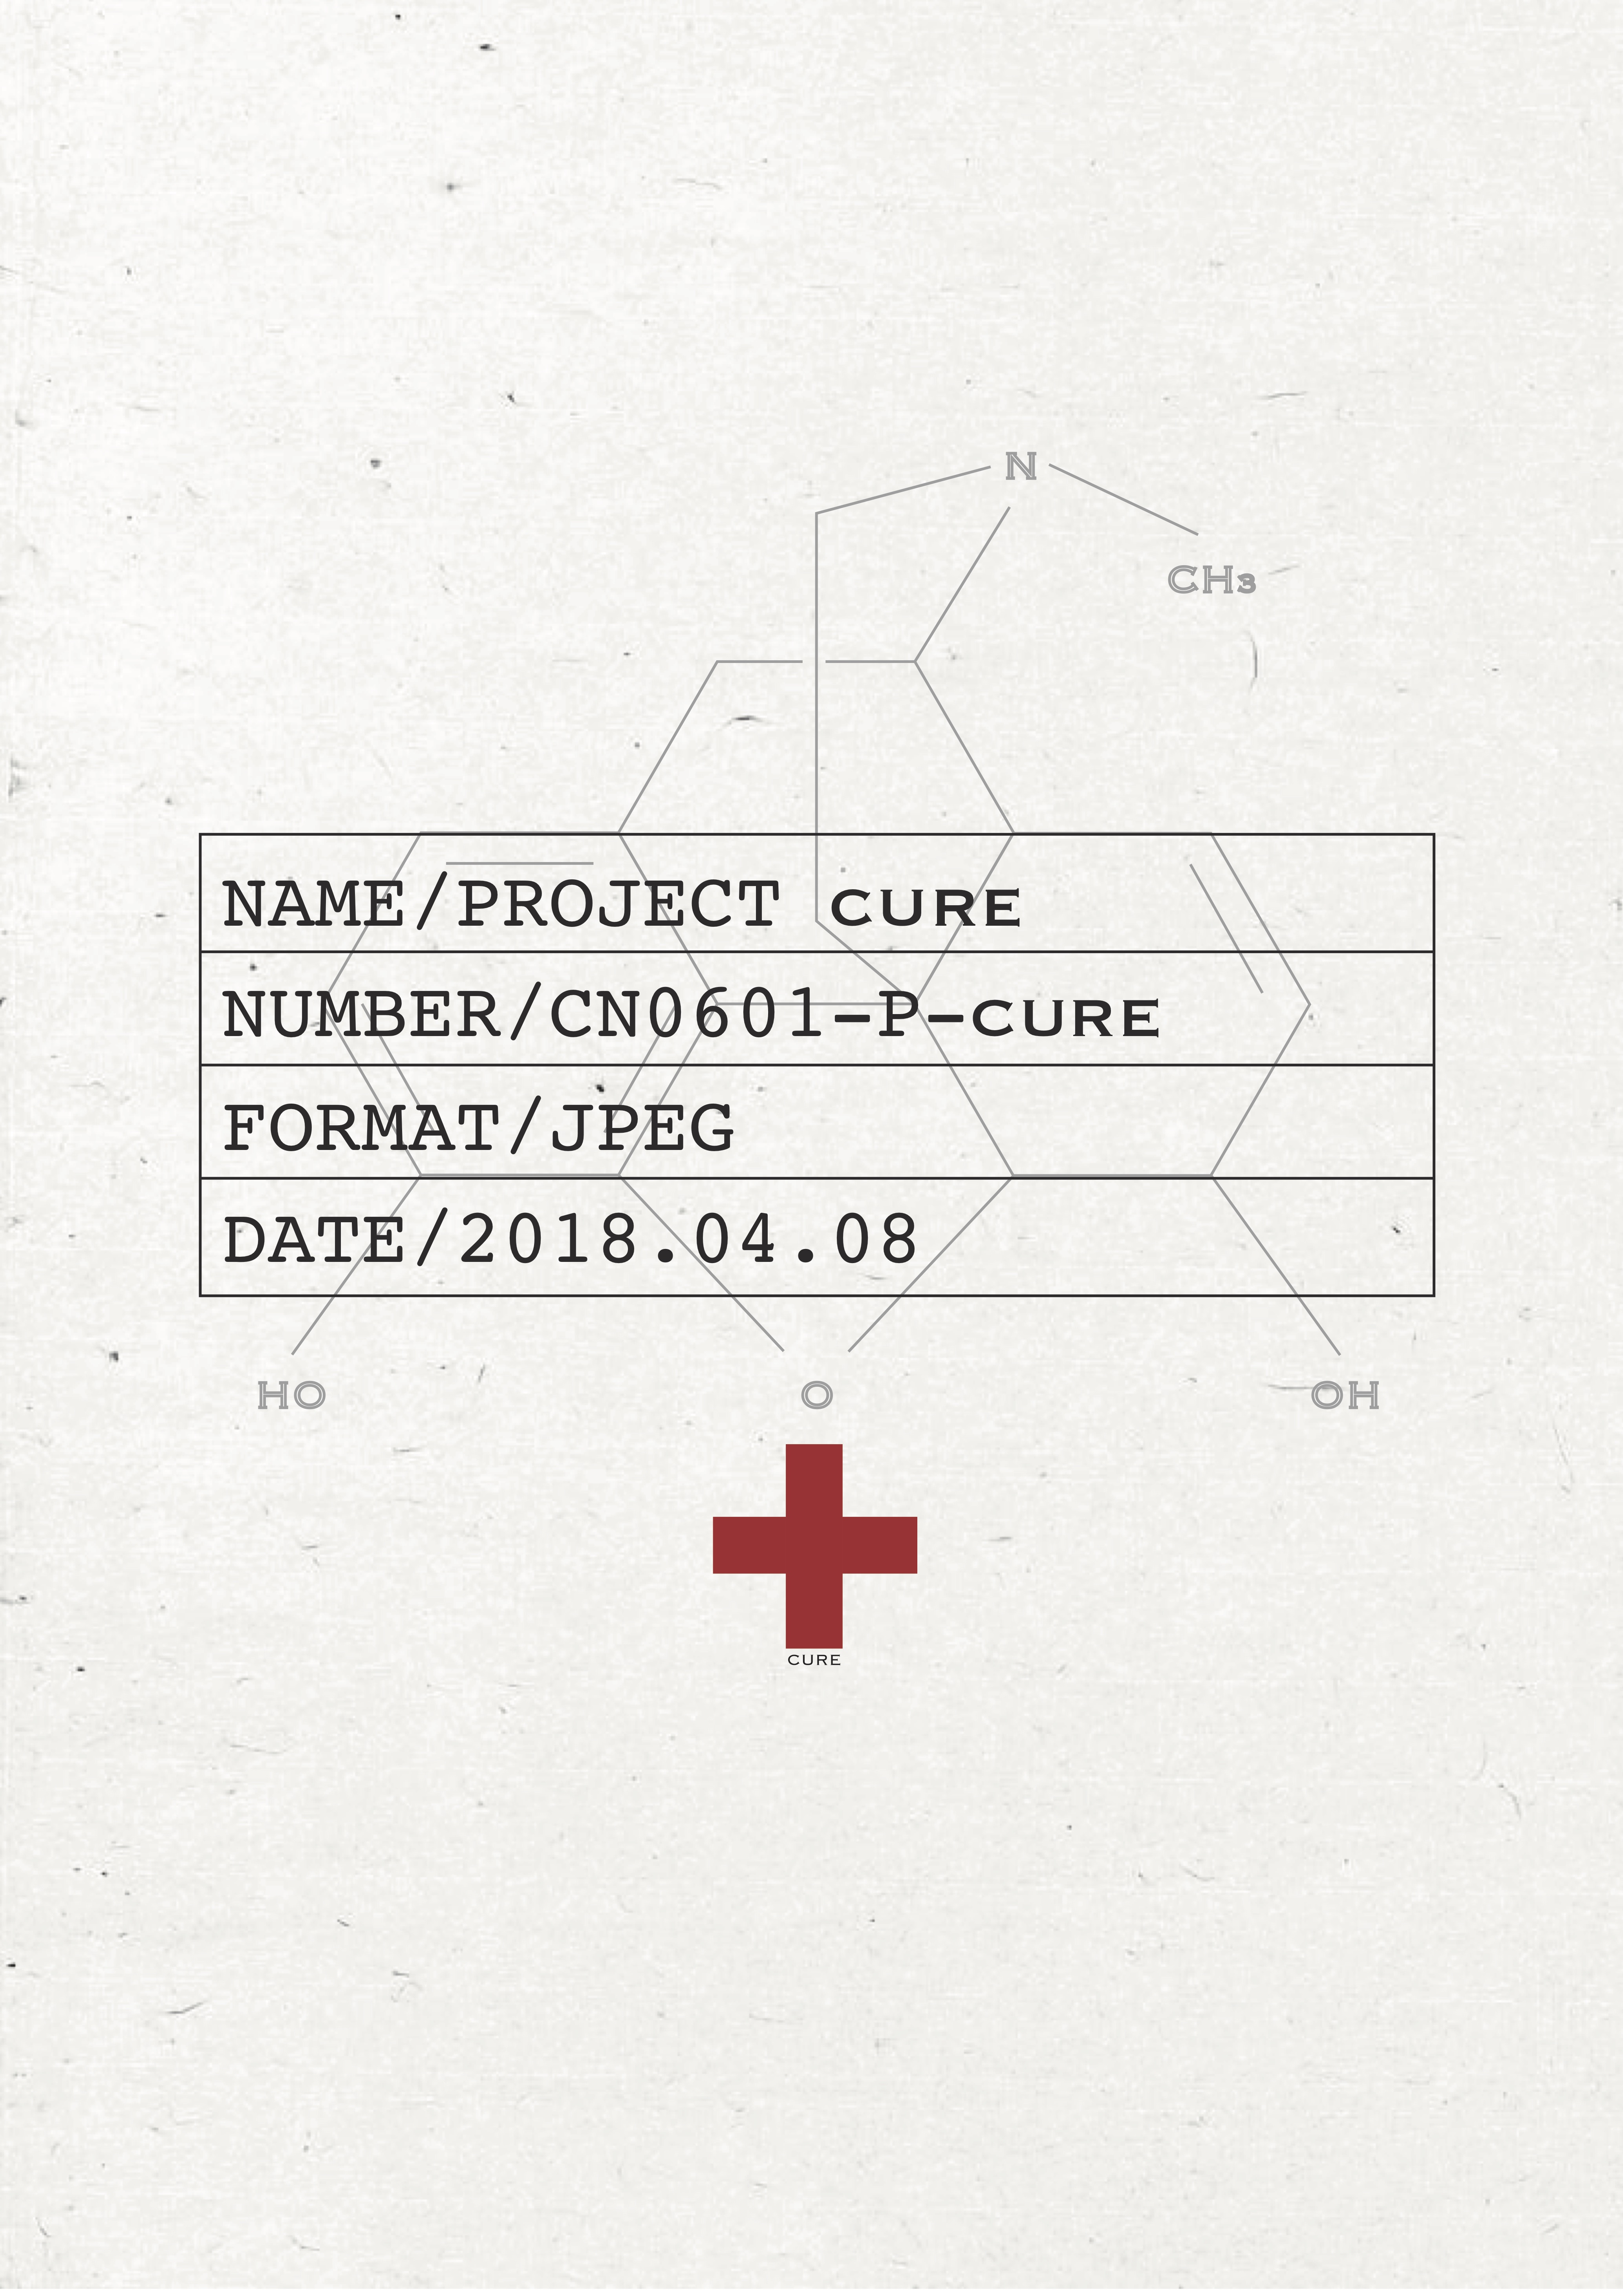 FMCN0601-P-CURE